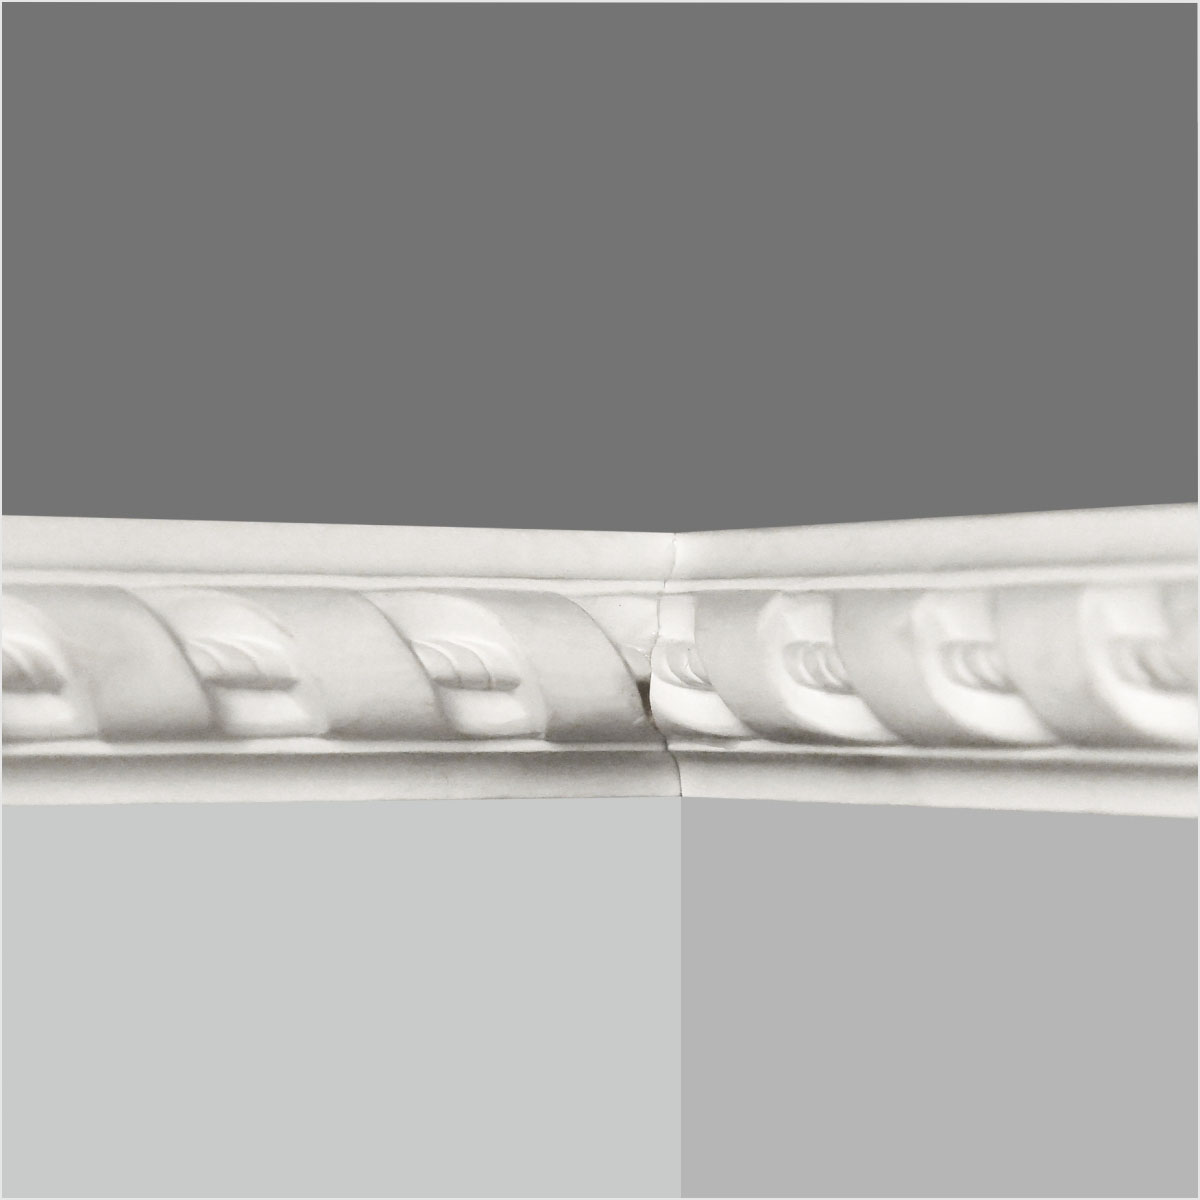 Decorative simple ceiling trim for sale